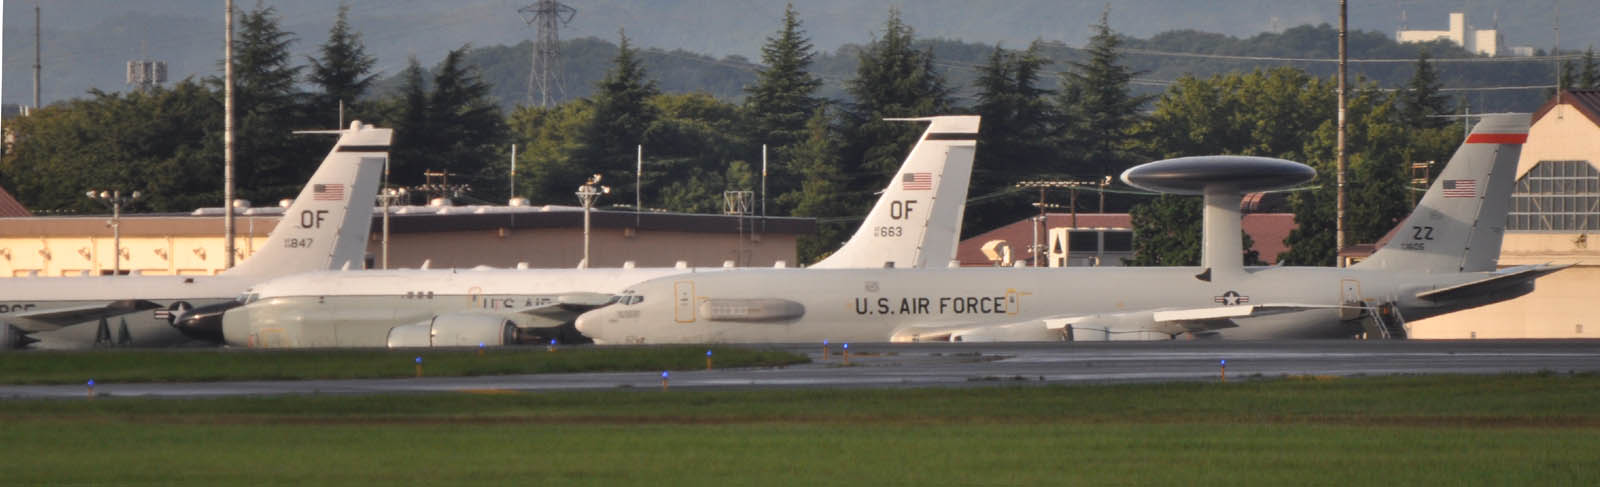 Rc135s110805g314